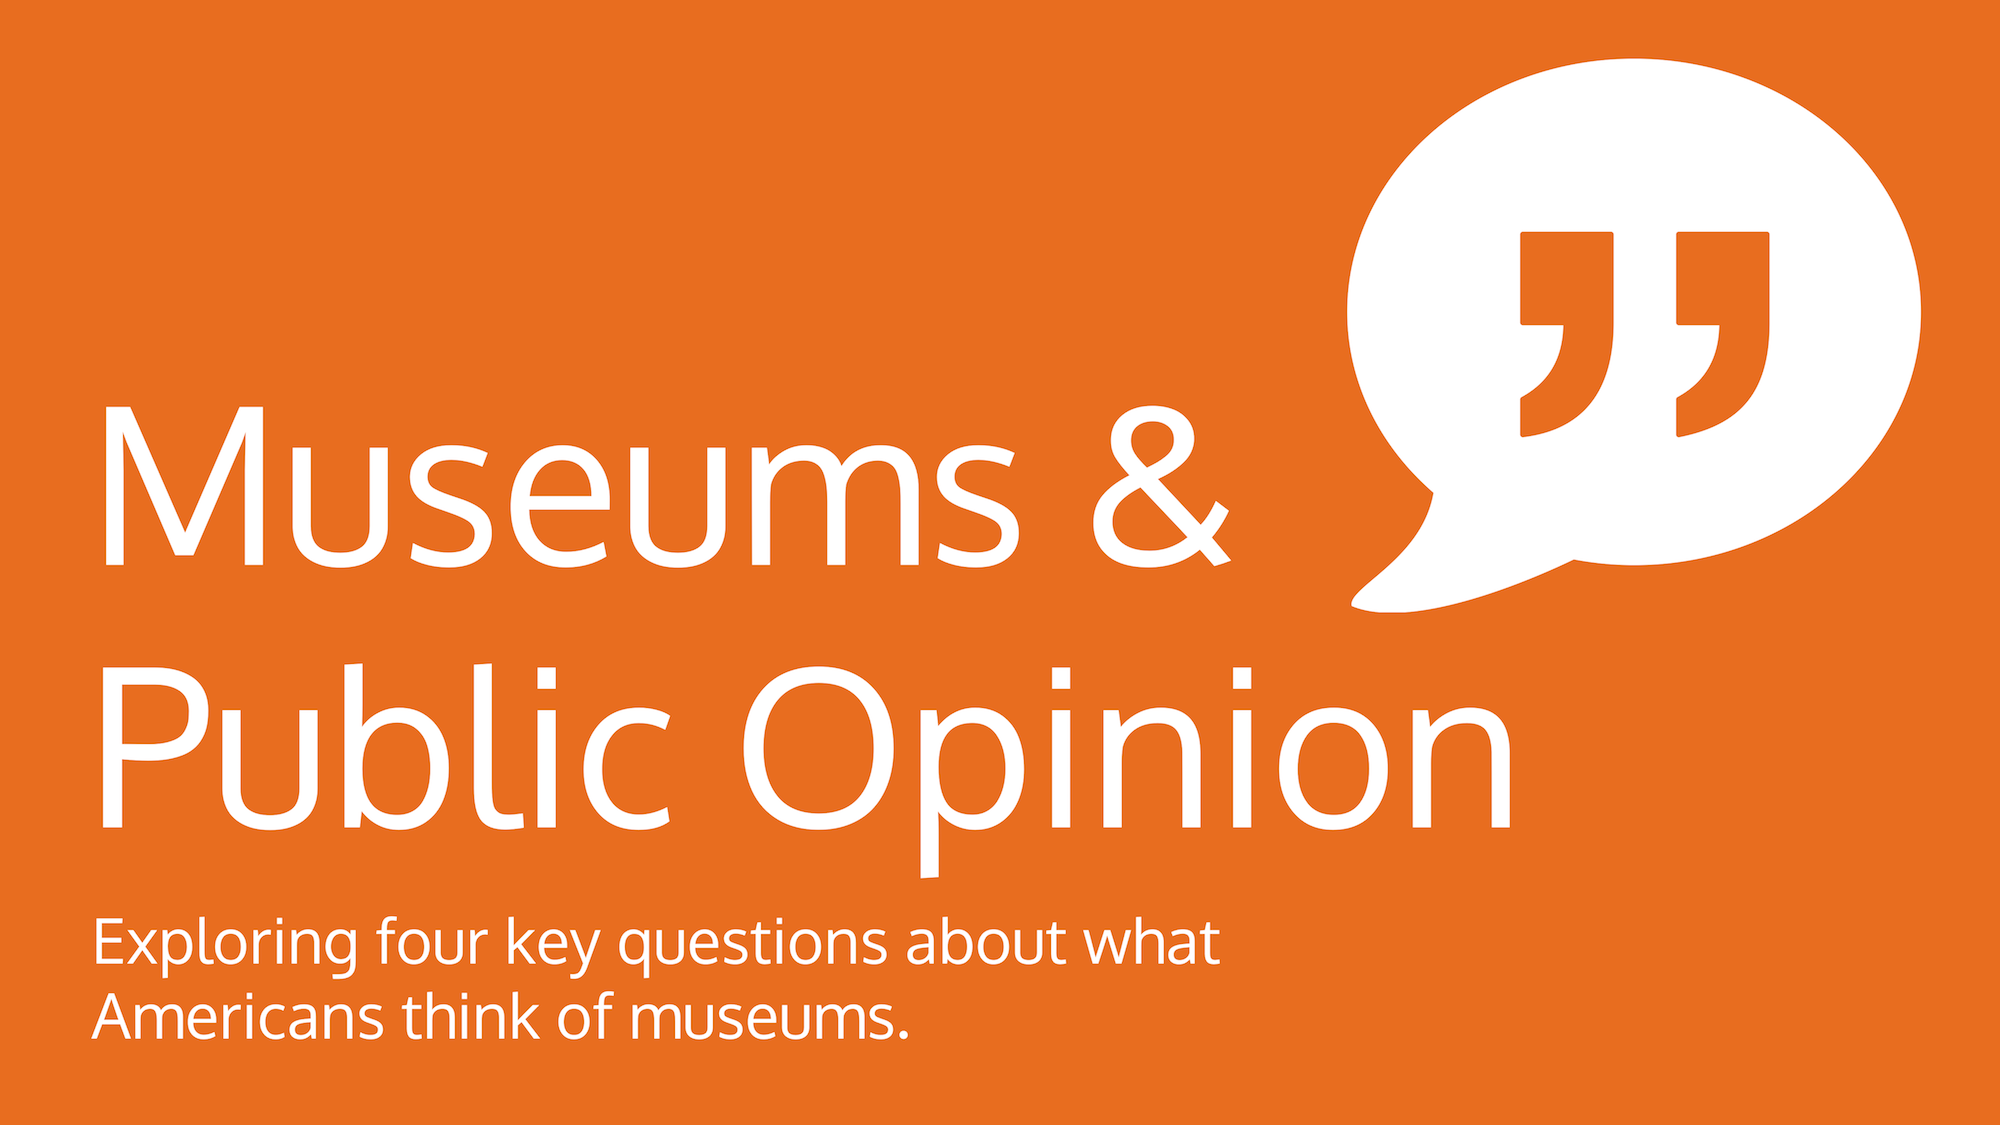 Graphic: Museums & Public Opinion: Exploring four key questions about what Americans think of museums